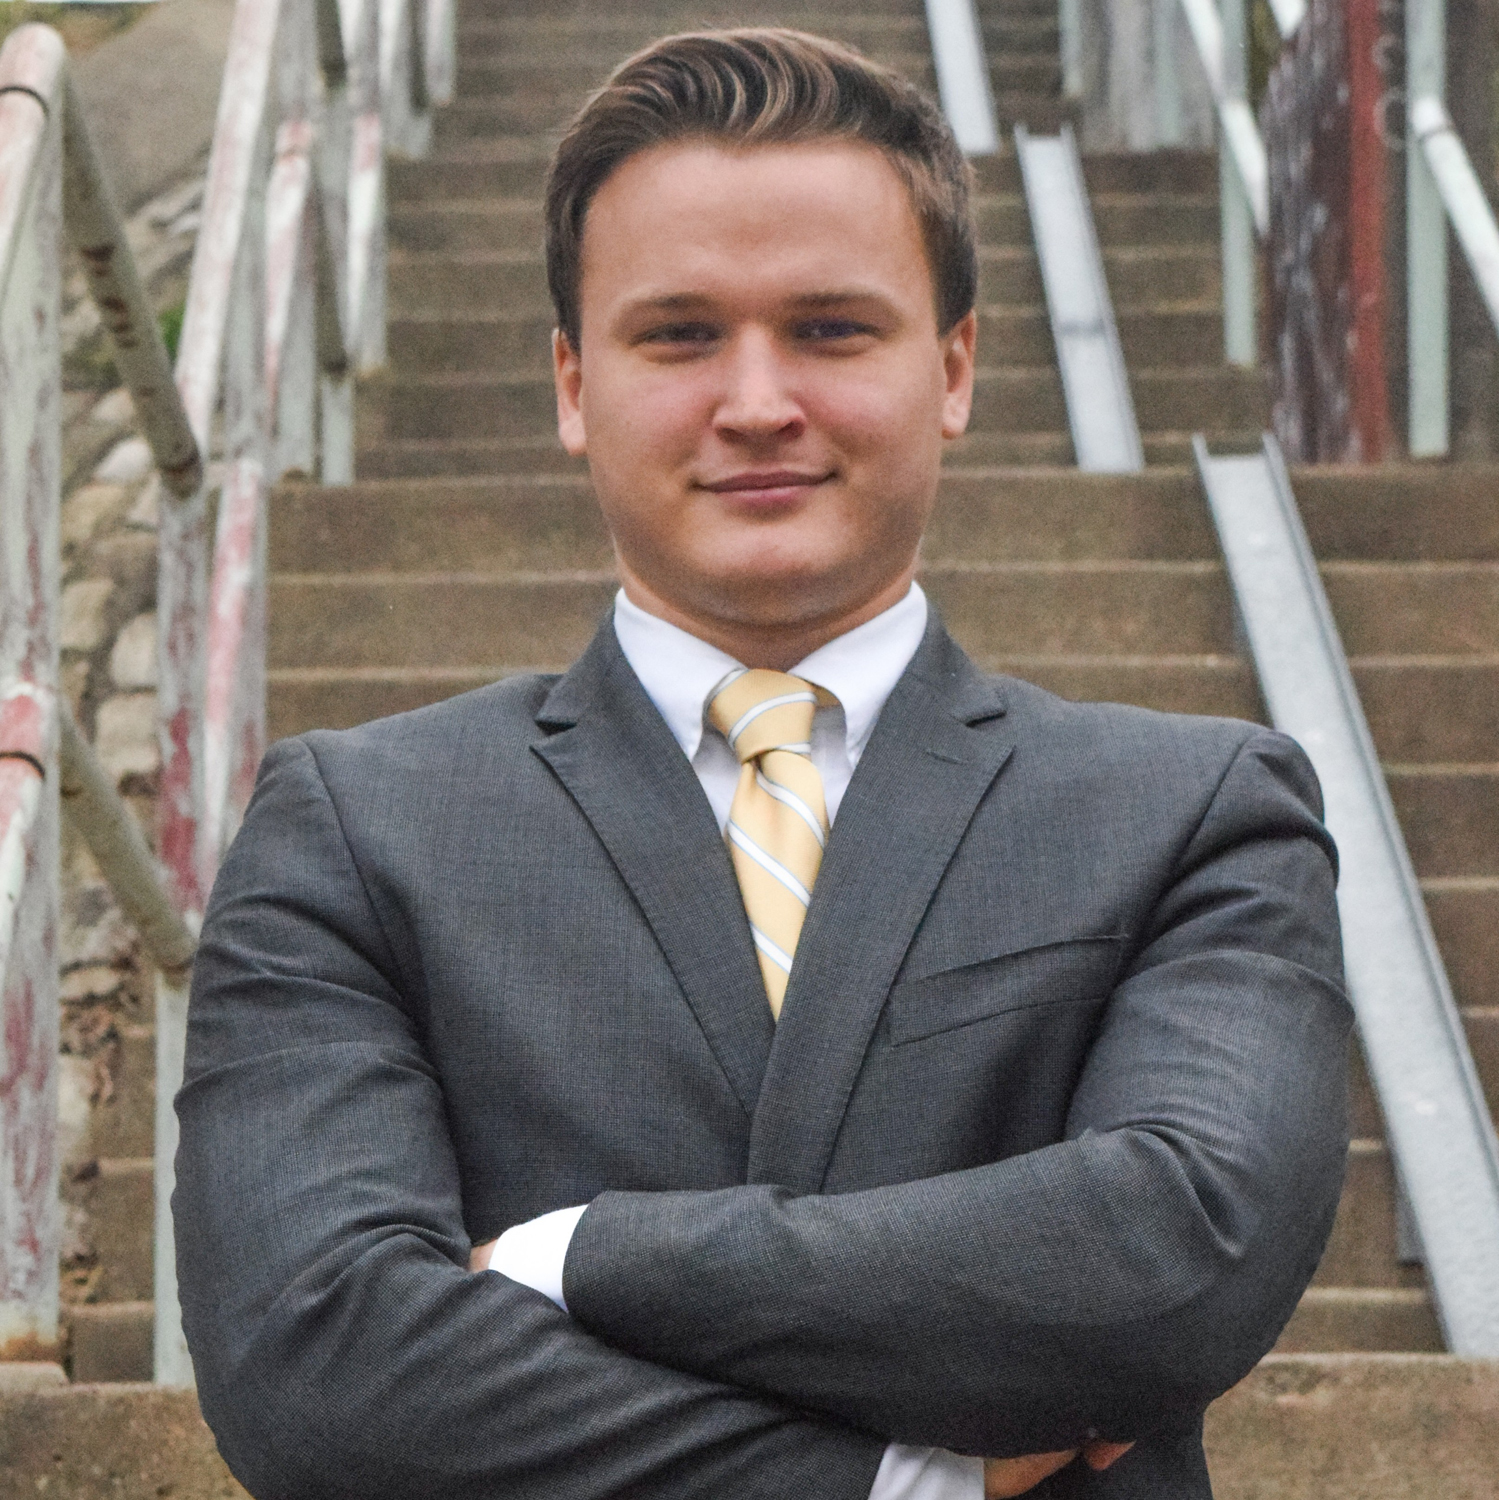 Twenty-five-year-old Computer science major Chris Kumanchik will run as a Democrat for the District 3 seat on City Council.